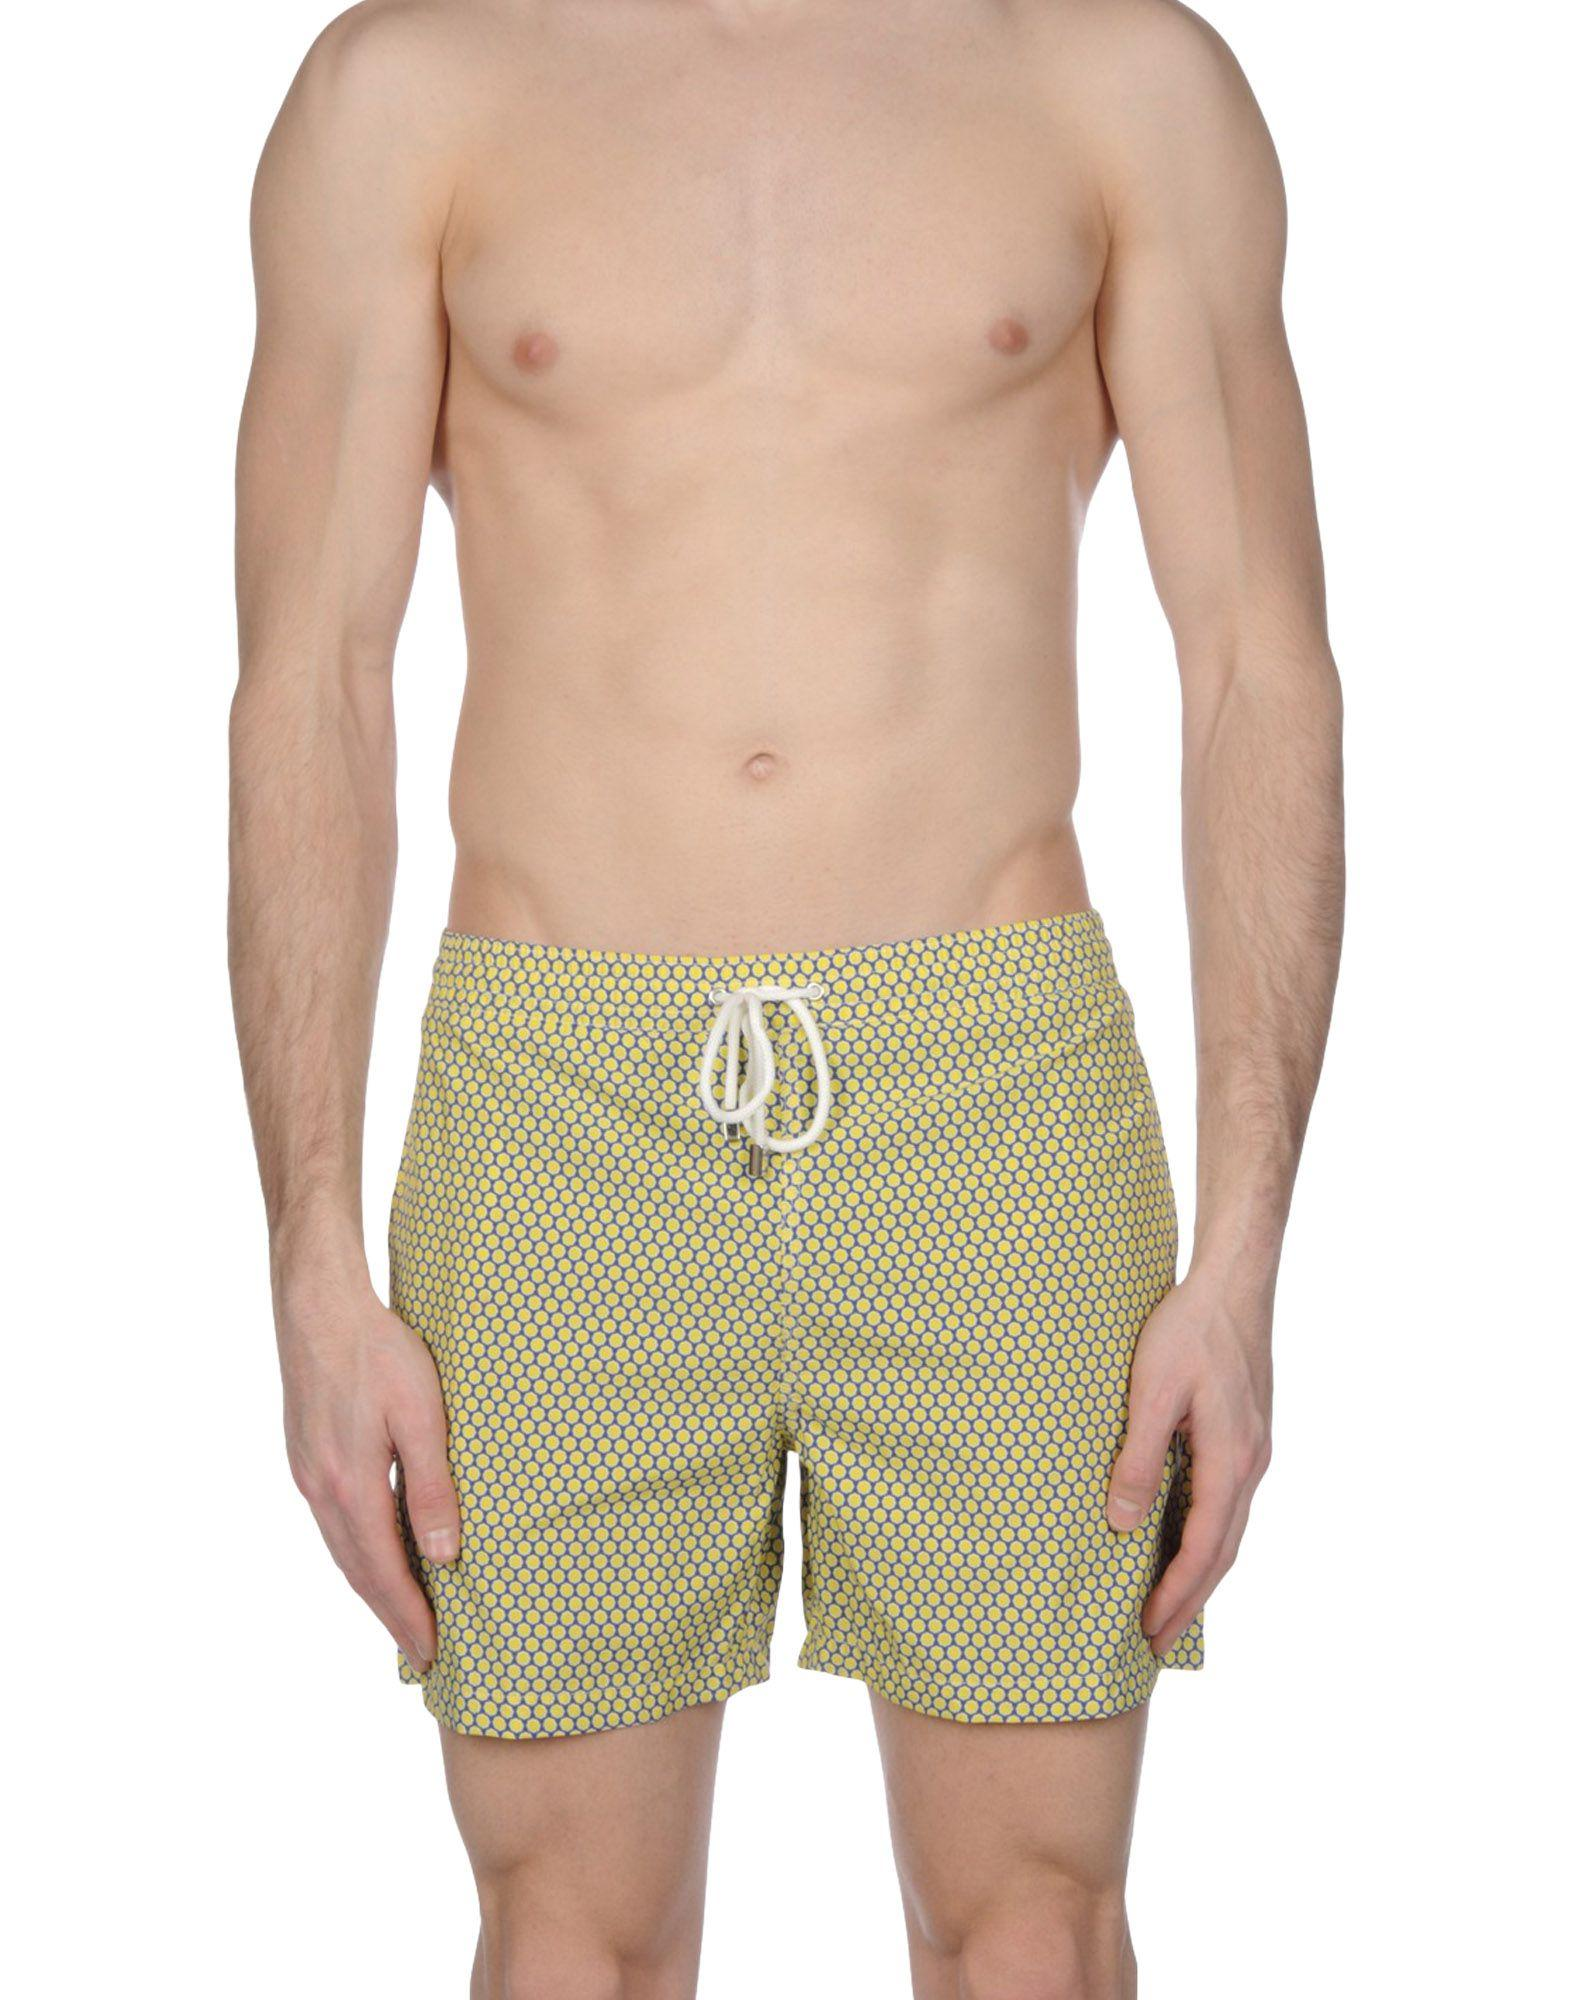 Swimwear. Make a splash in swim styles that look great at the pool or on the beach.